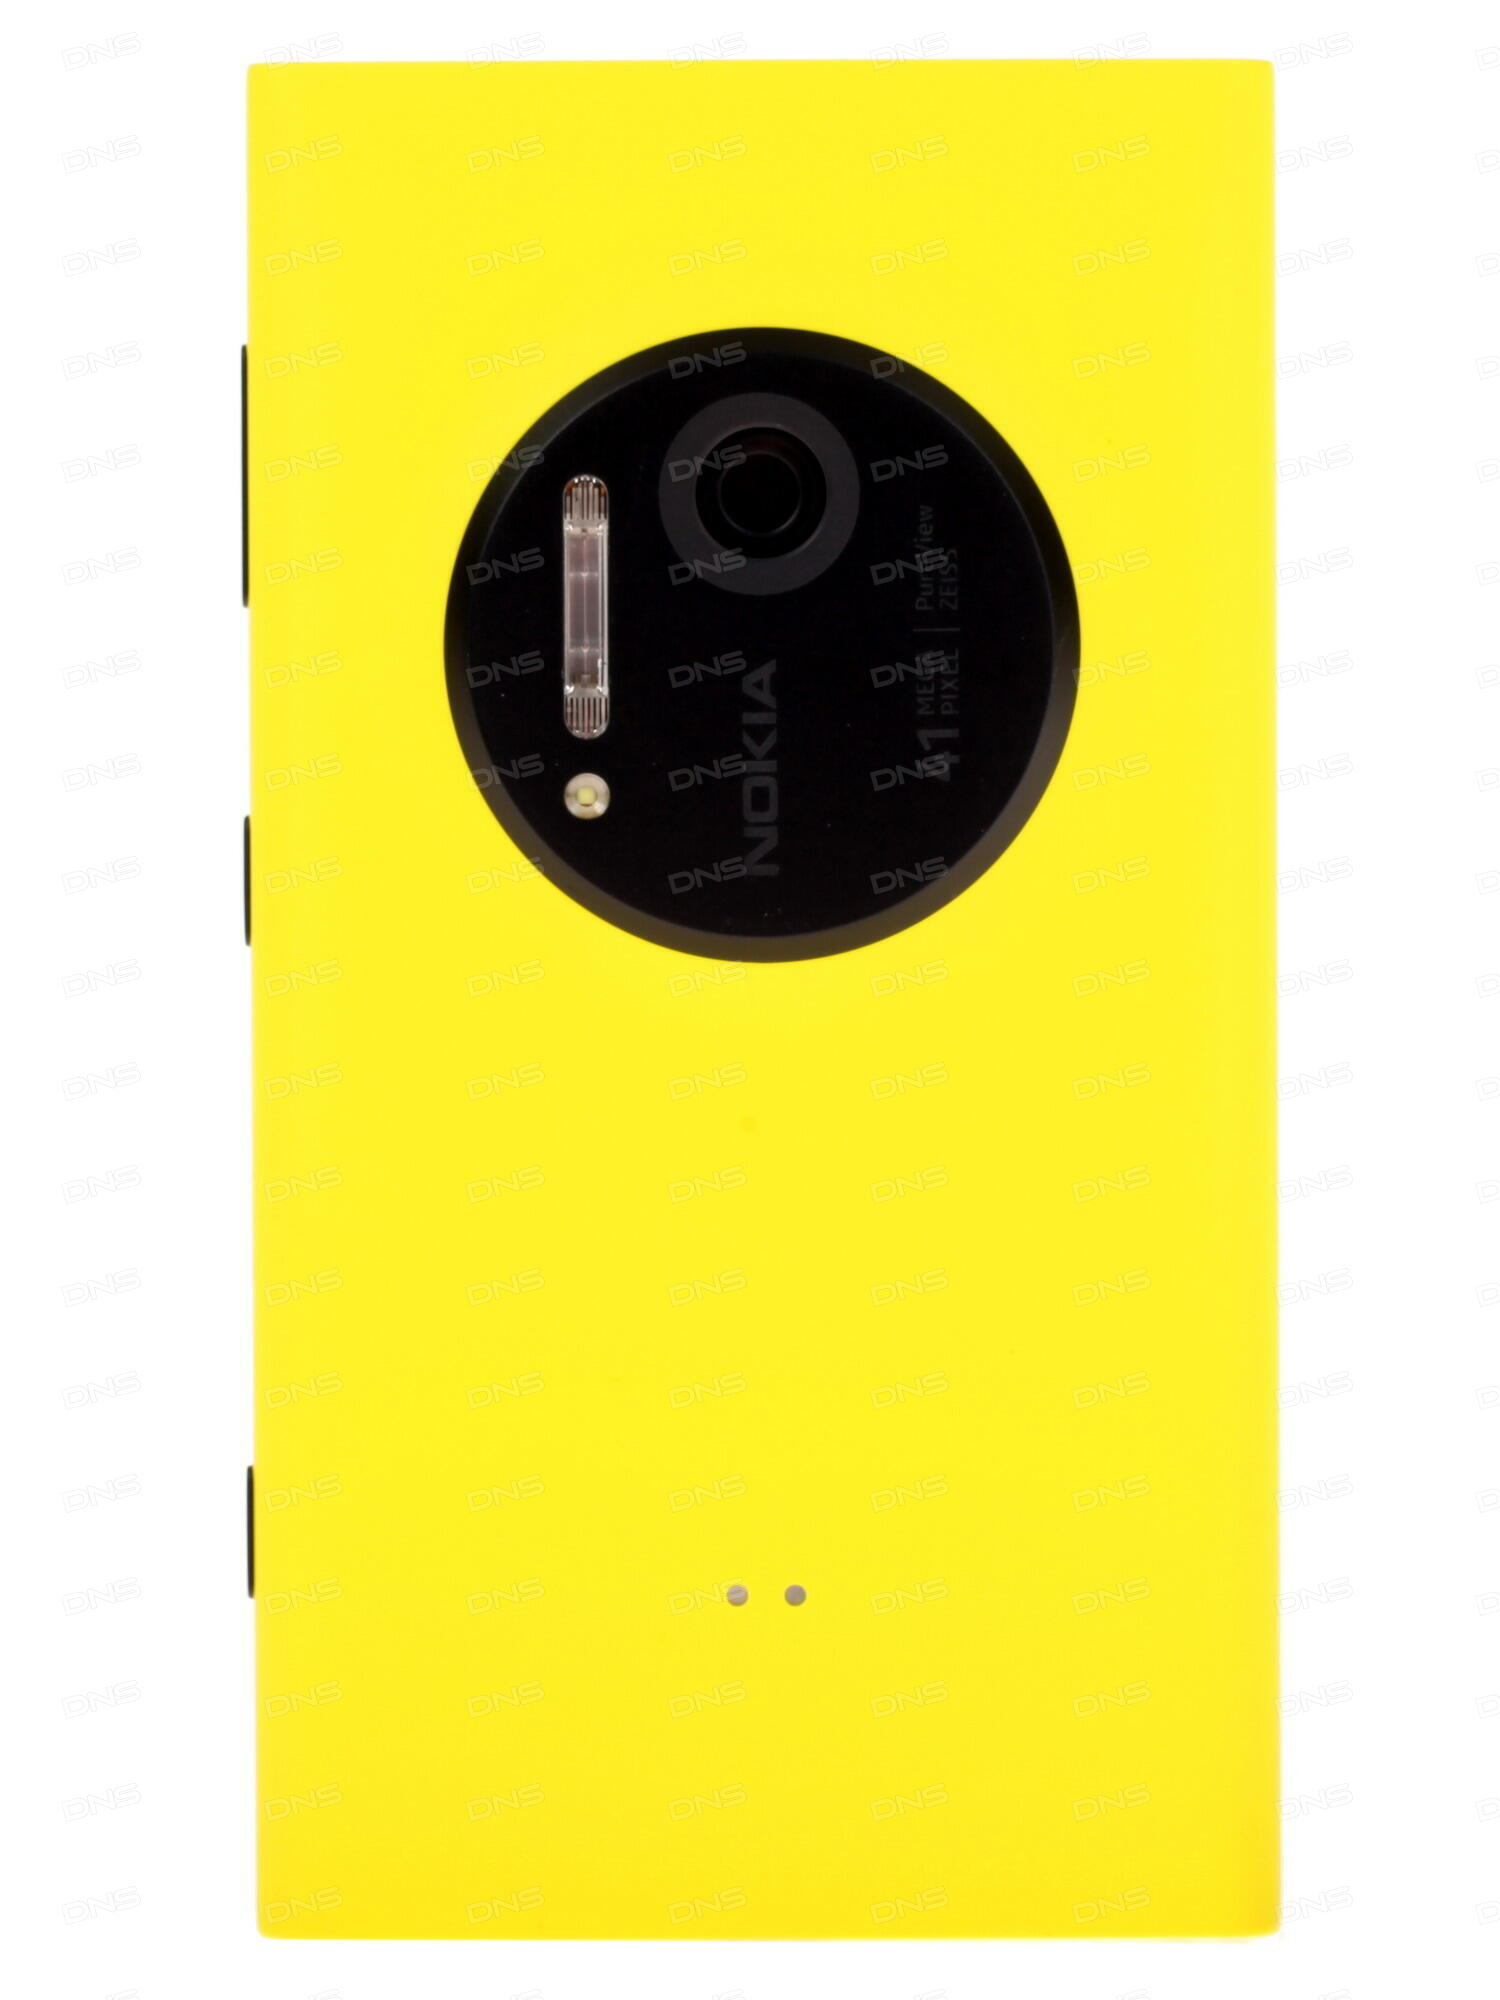 Nokia 1020 photography review Cached